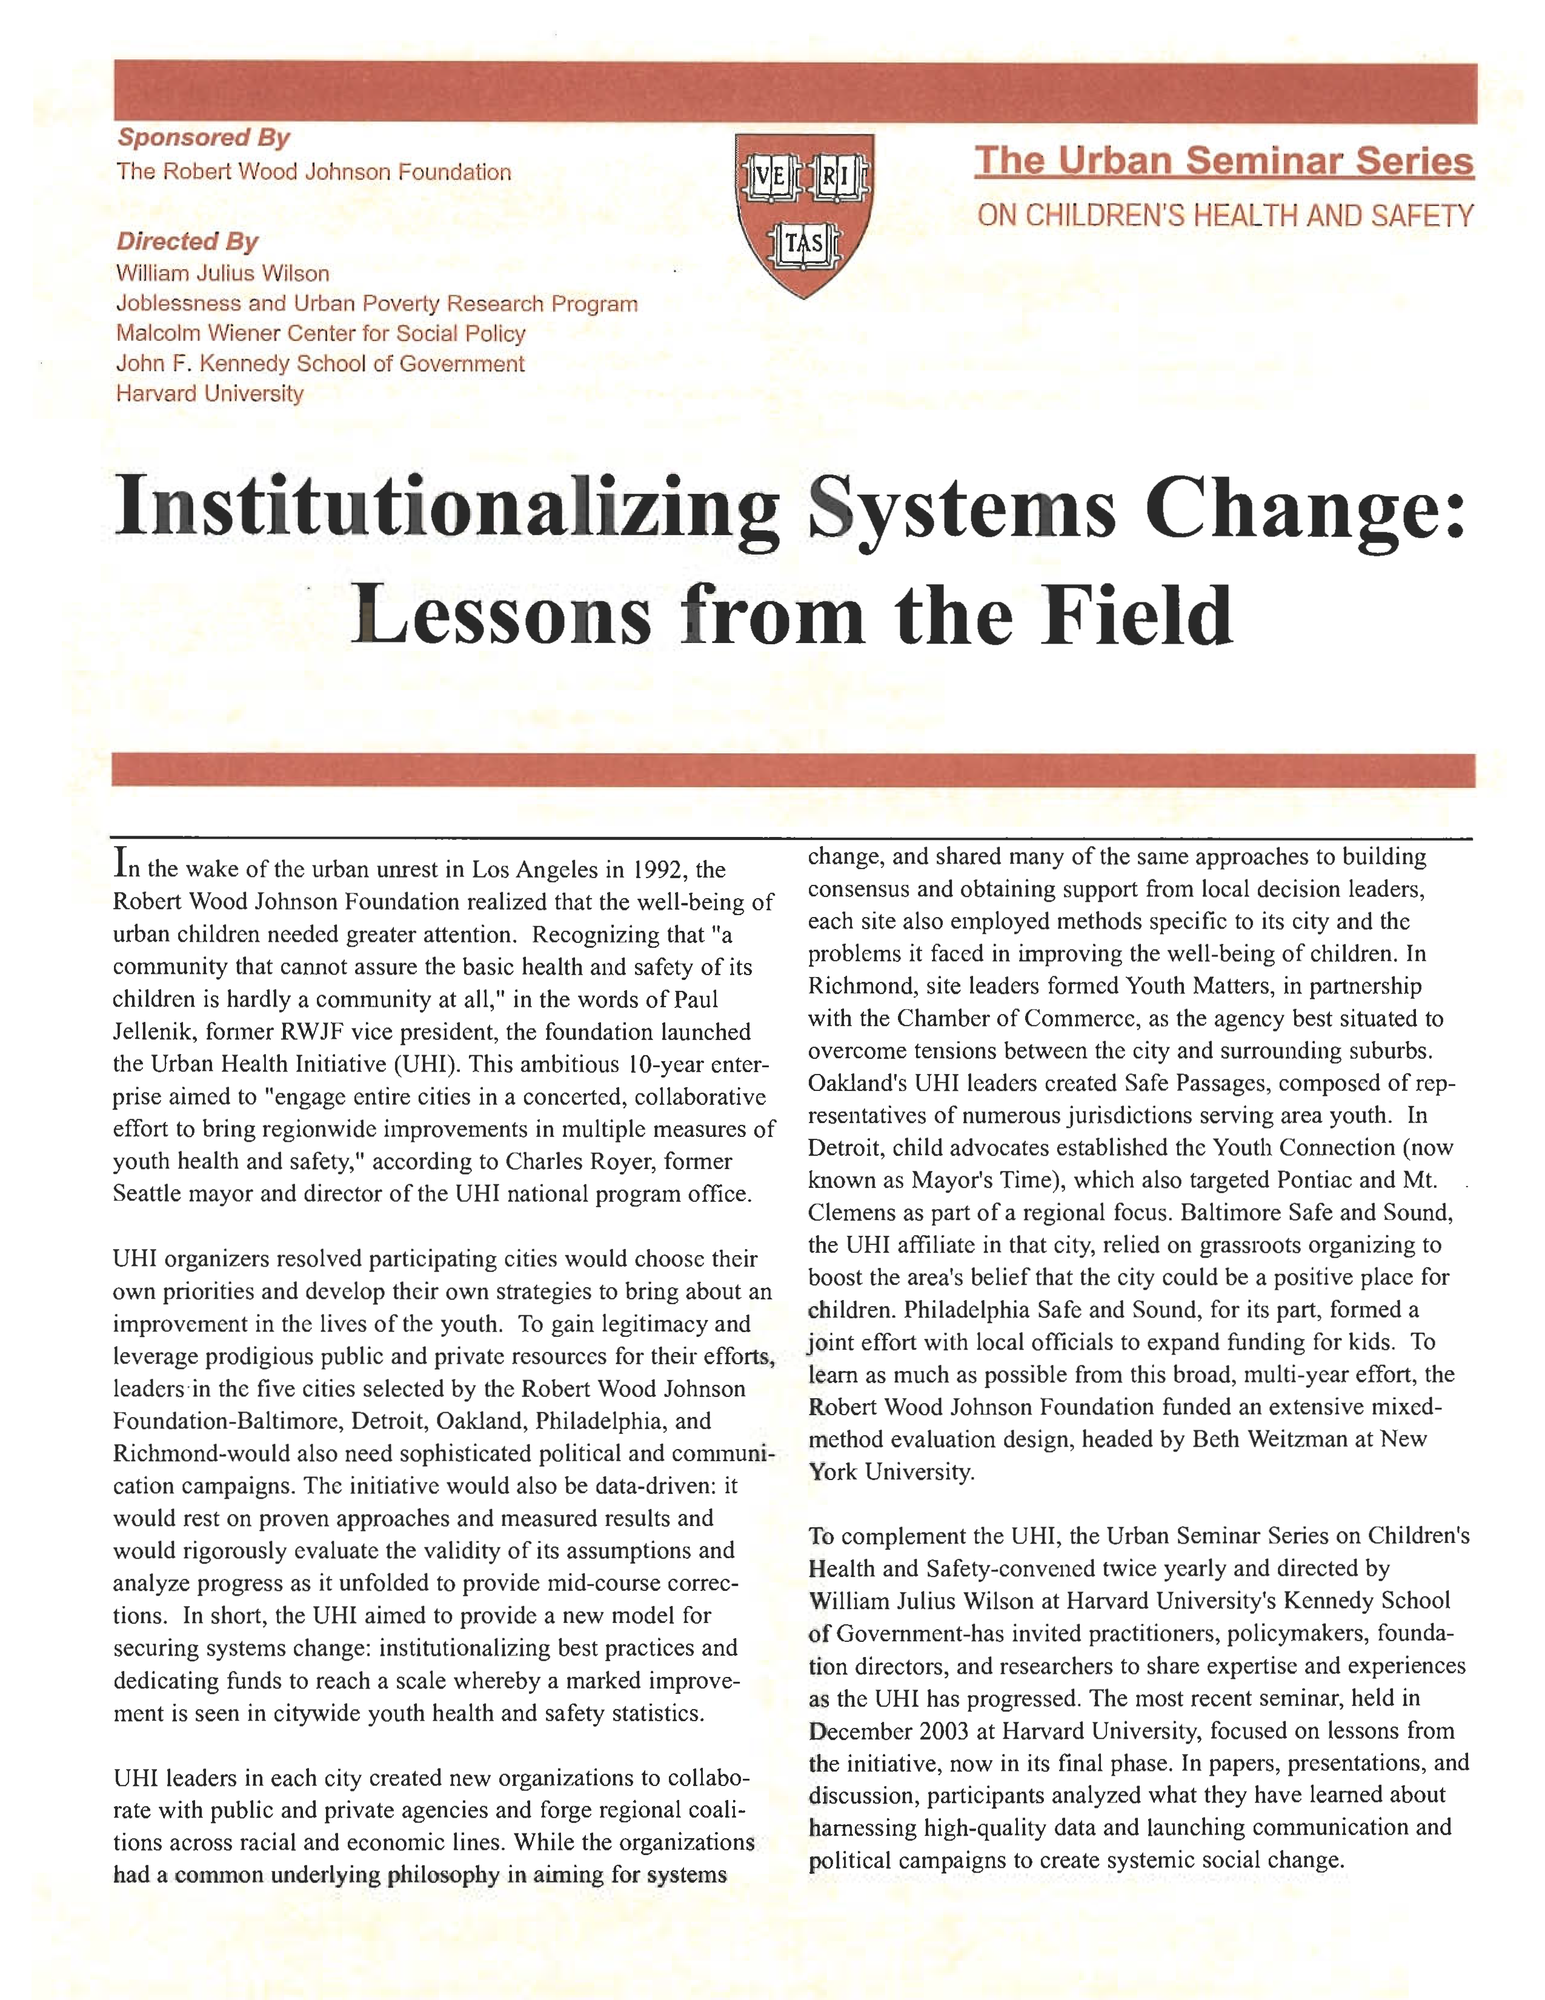 Institutionalizing Systems Change: Spotlight on the Sites, December 2003